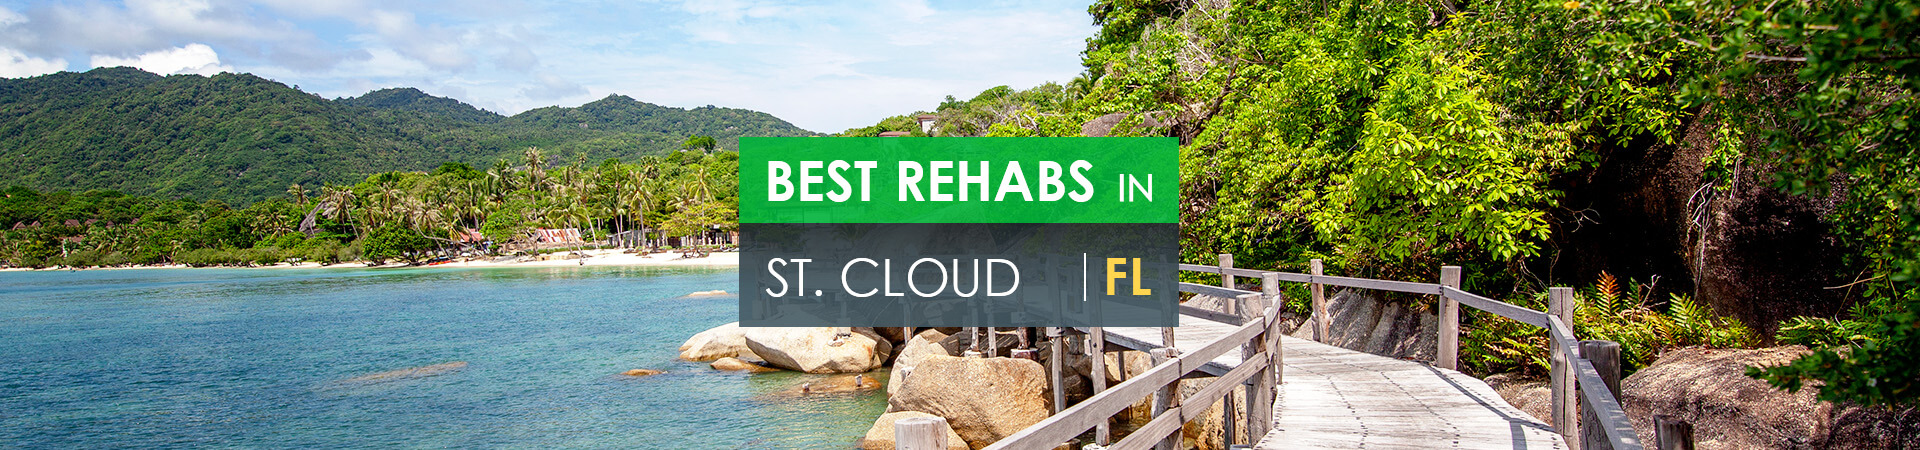 Best rehabs in St. Cloud, FL